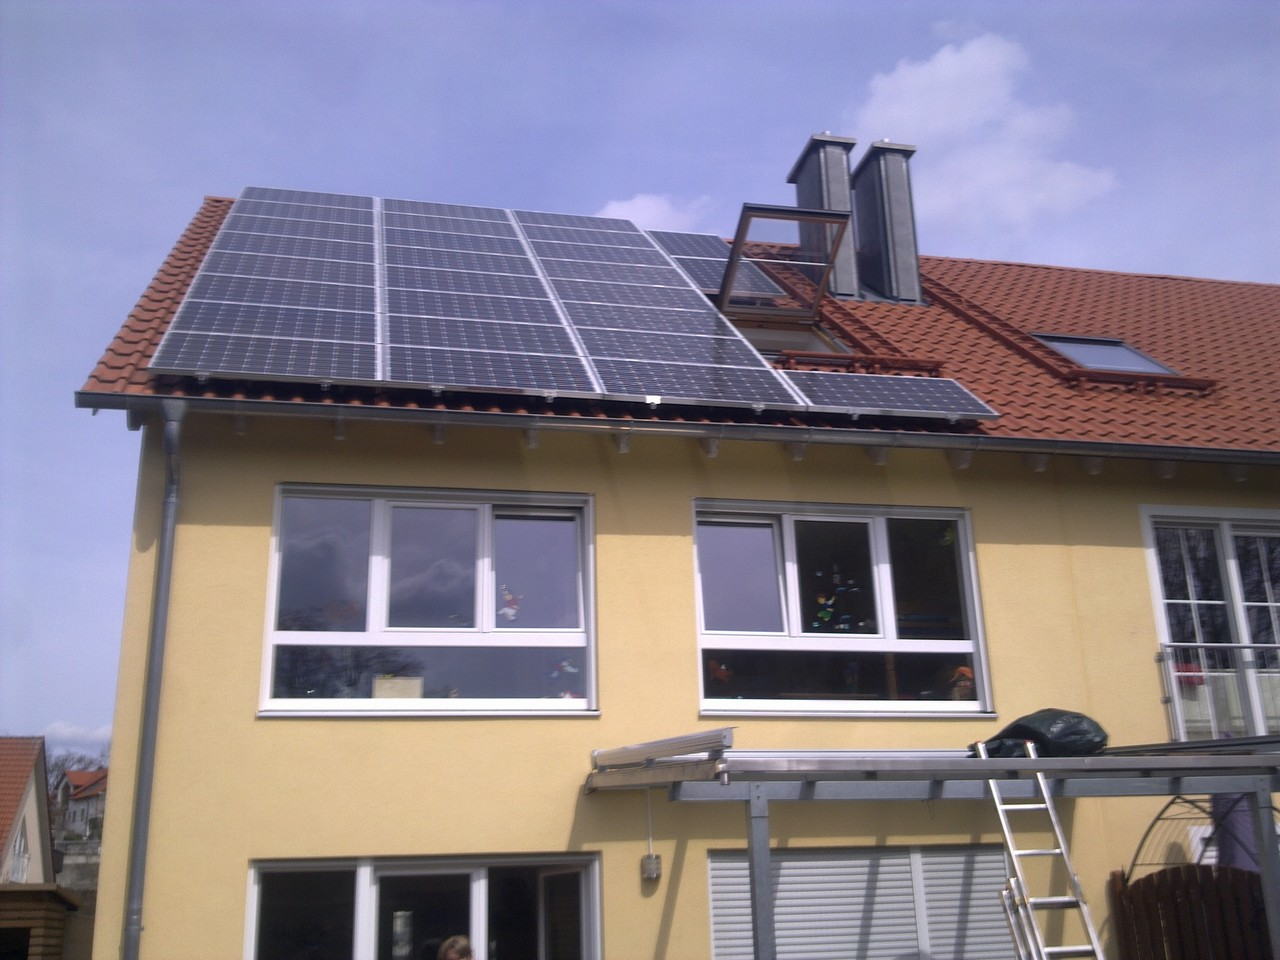 7,15 kWp Photovoltaikanlage in 93138 Lappersdorf